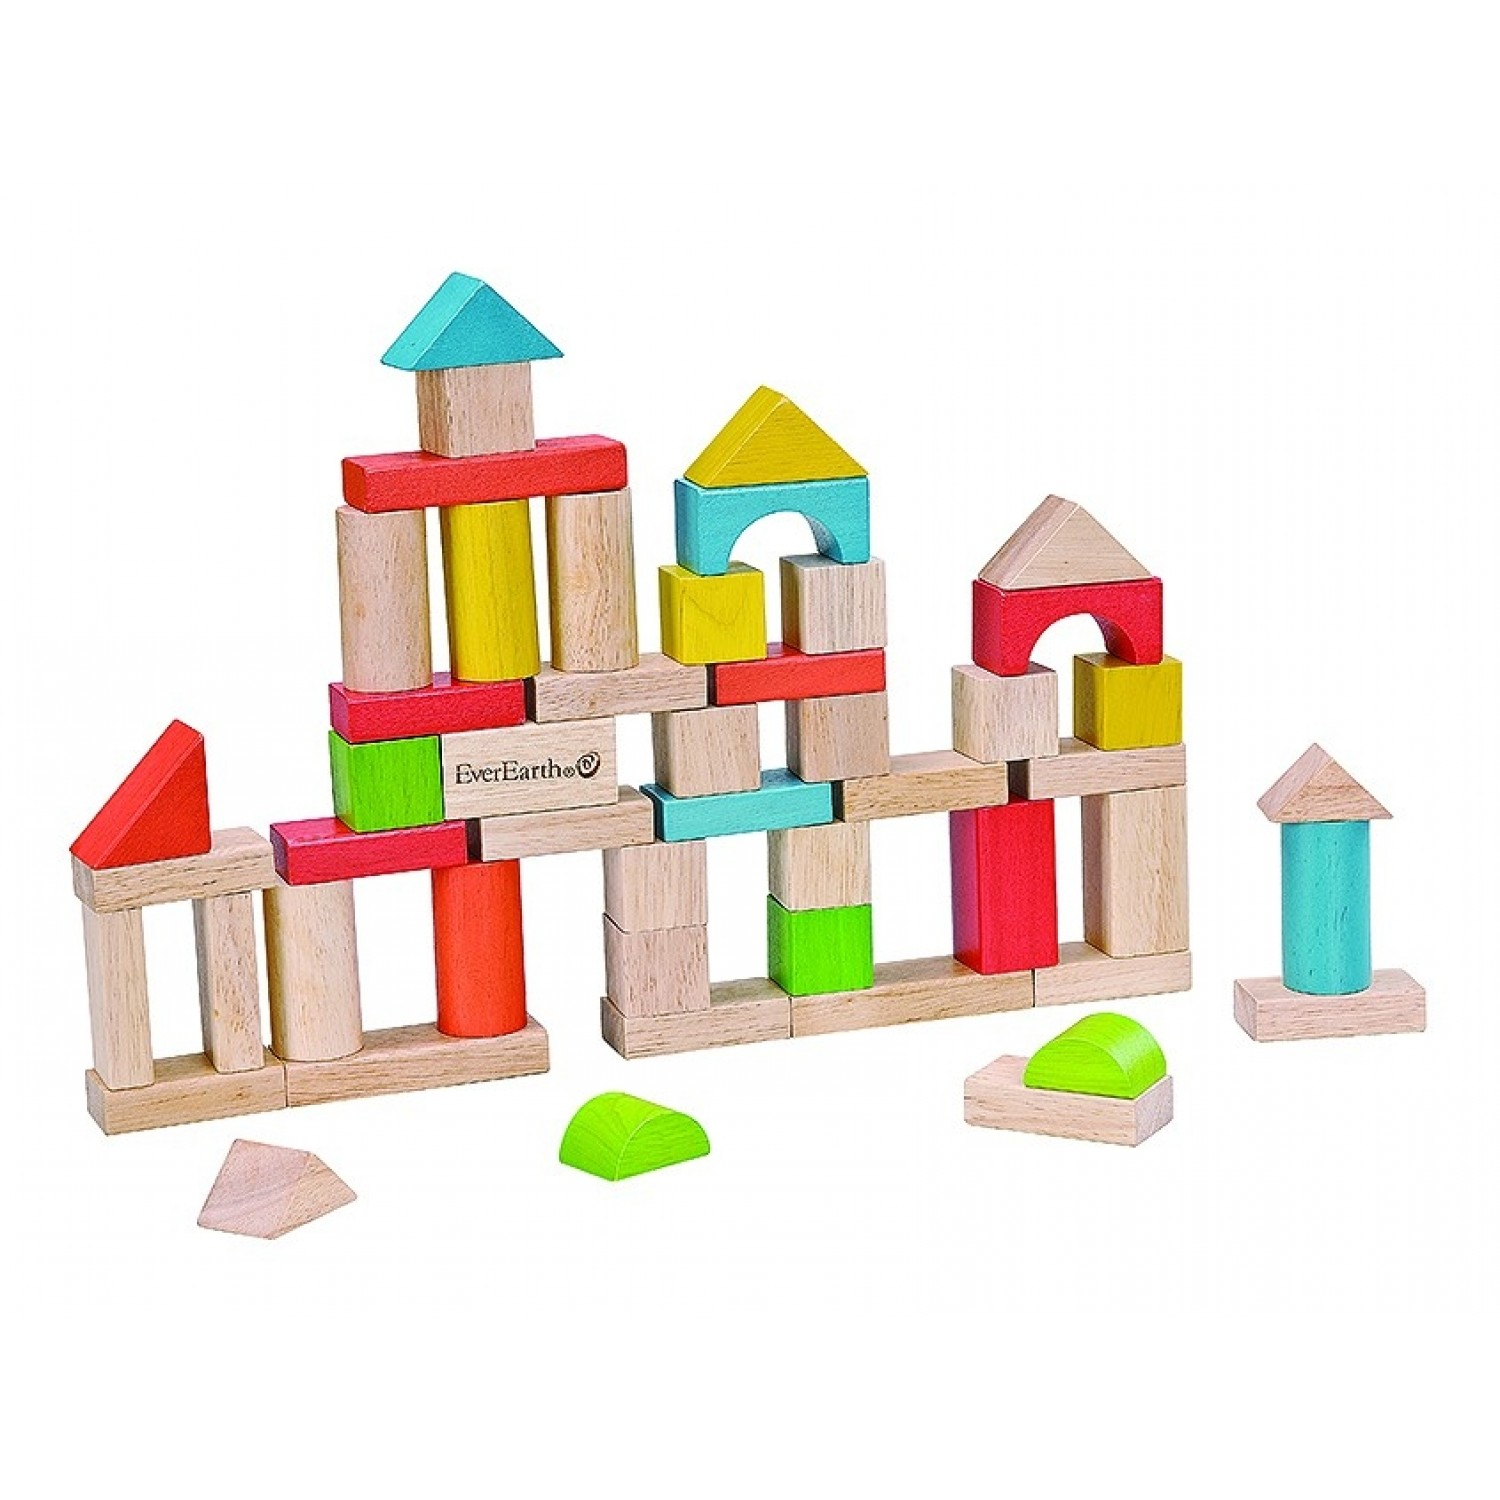 EverEarth 50-piece building blocks made of FSC wood